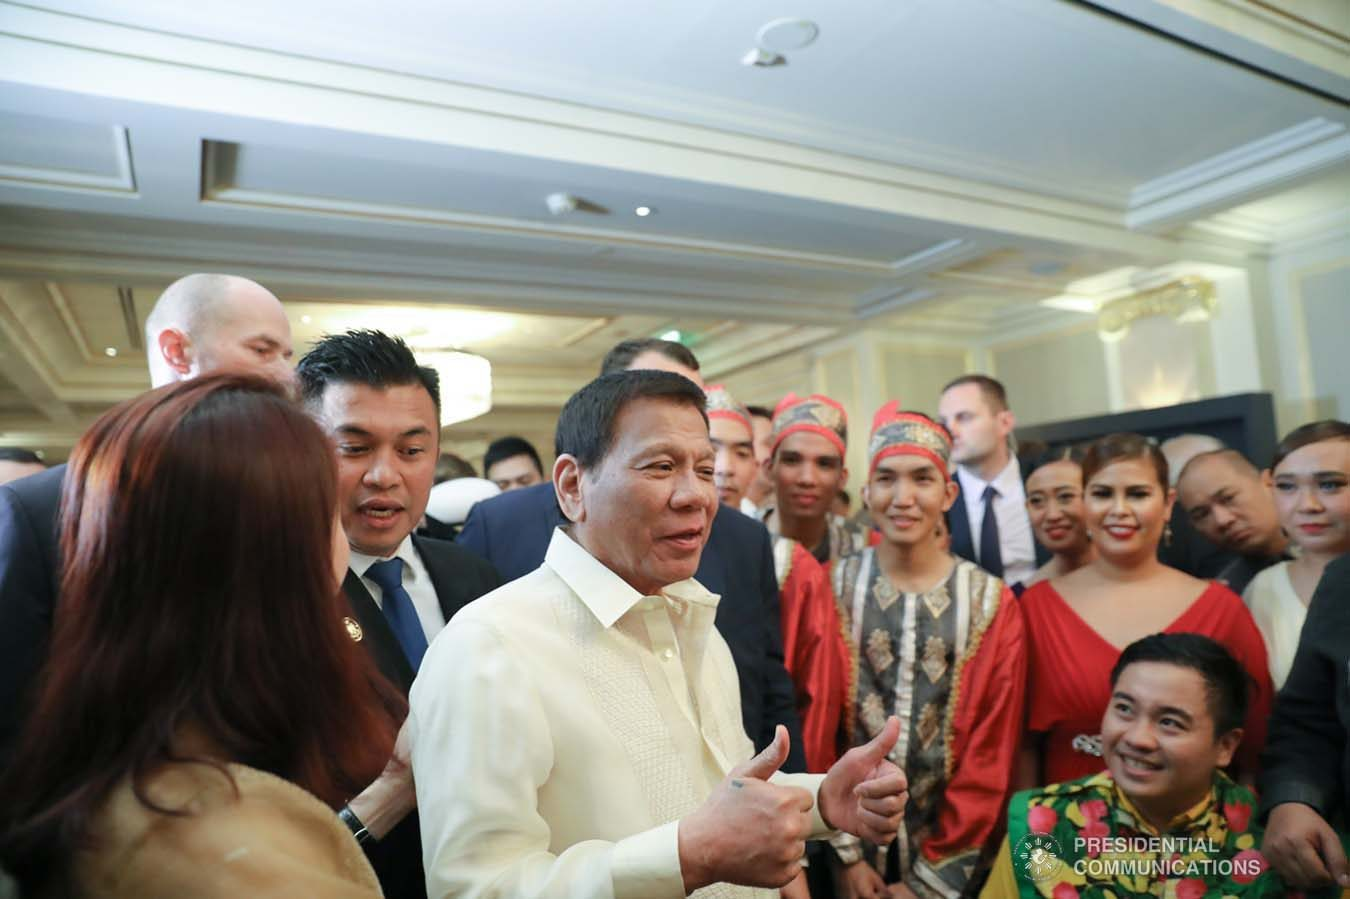 President Rodrigo Roa Duterte shares a light moment with some of the performers during the Philippine Cultural Gala Performance at the Four Seasons Hotel in Moscow, Russian Federation on October 4, 2019. ALFRED FRIAS/PRESIDENTIAL PHOTO